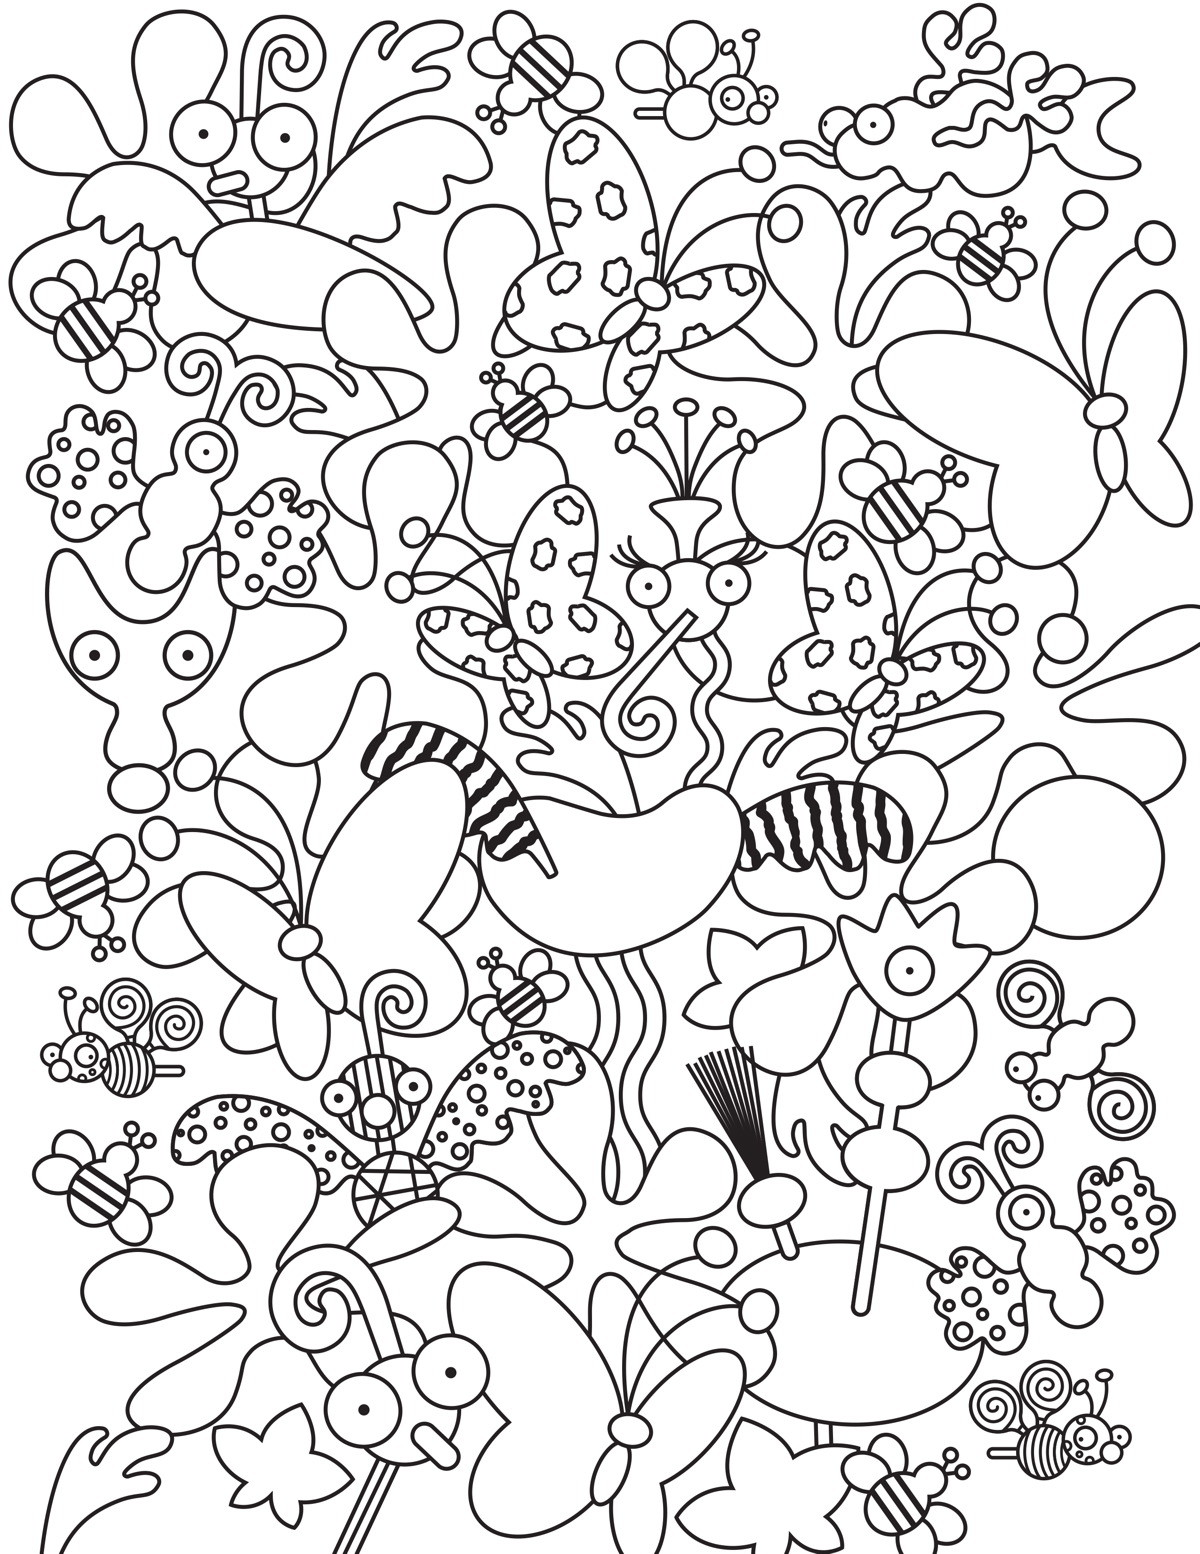 Zolocolor!-doodle-canoodle-9781442468481.in01